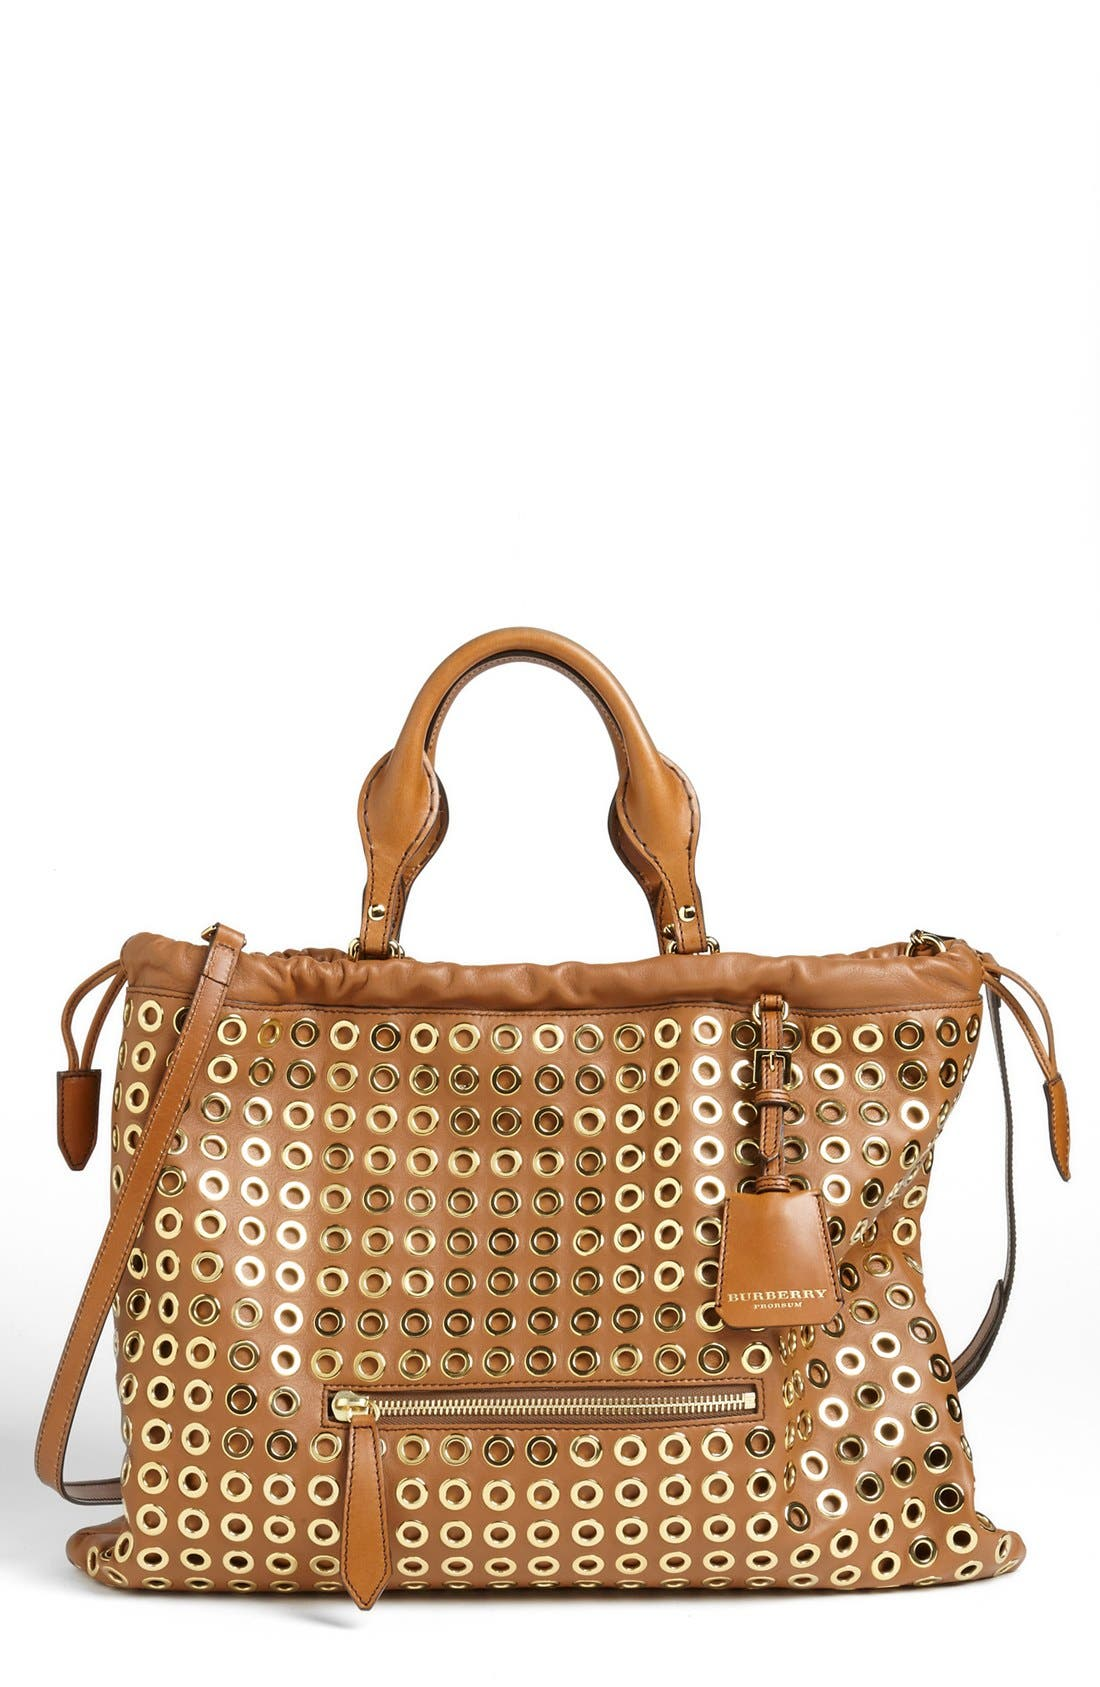 Alternate Image 1 Selected - Burberry Prorsum 'The Big Crush' Tote